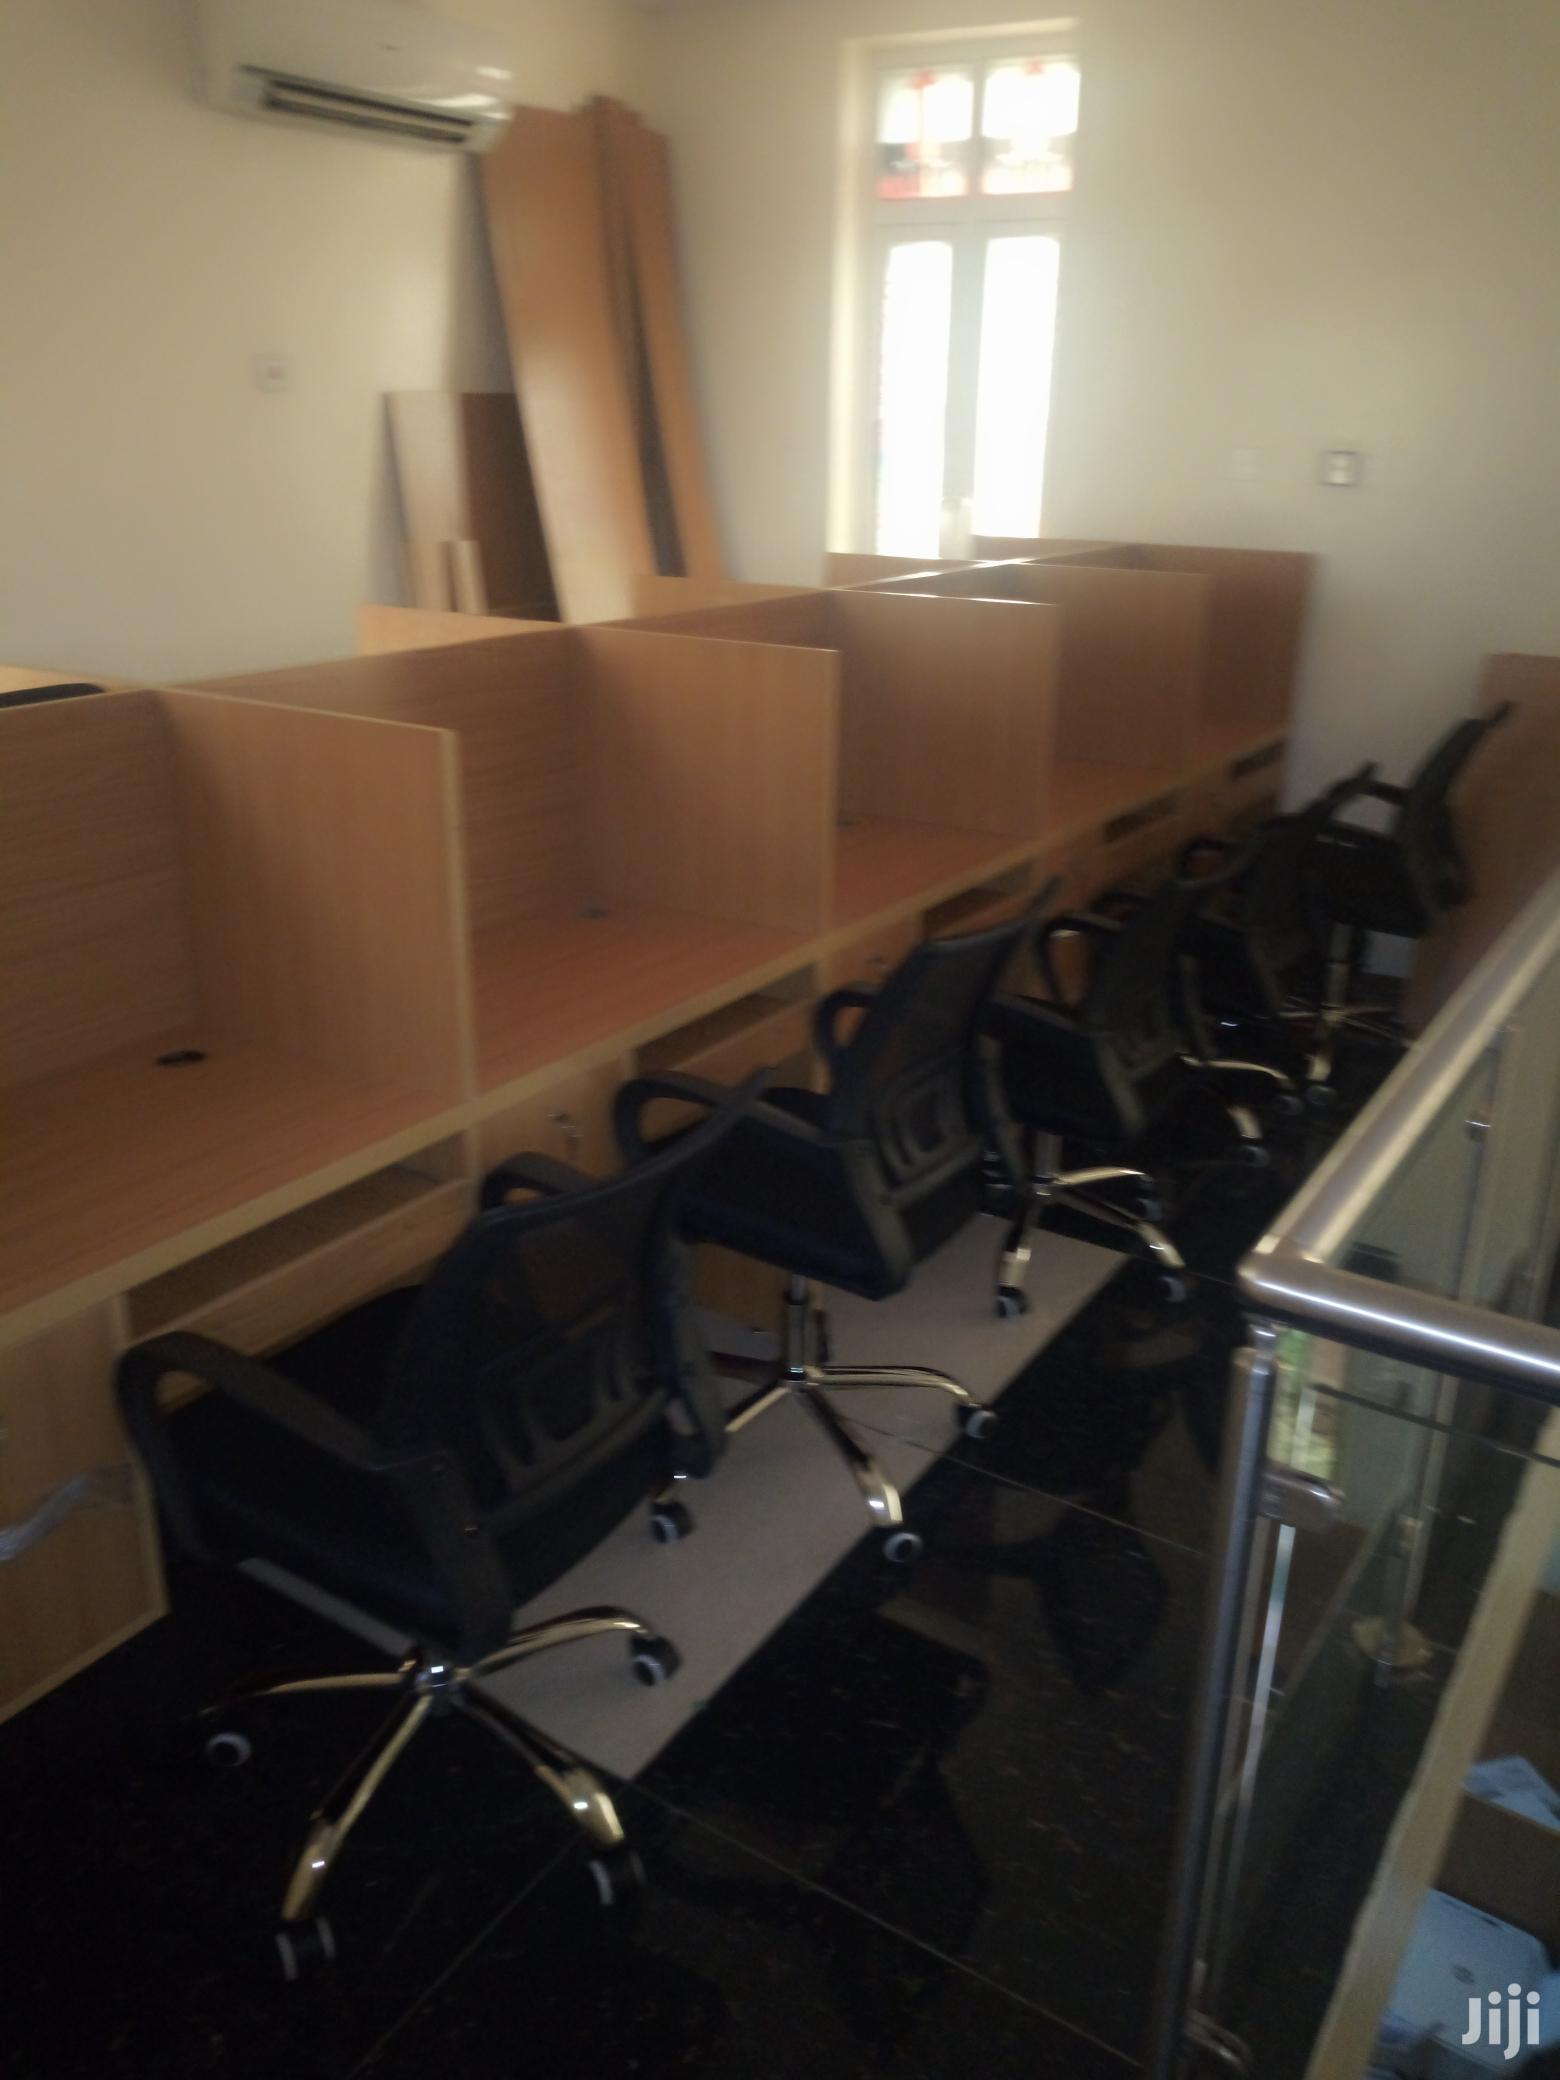 Computer Training Tables and Economic Mesh Office Chairs